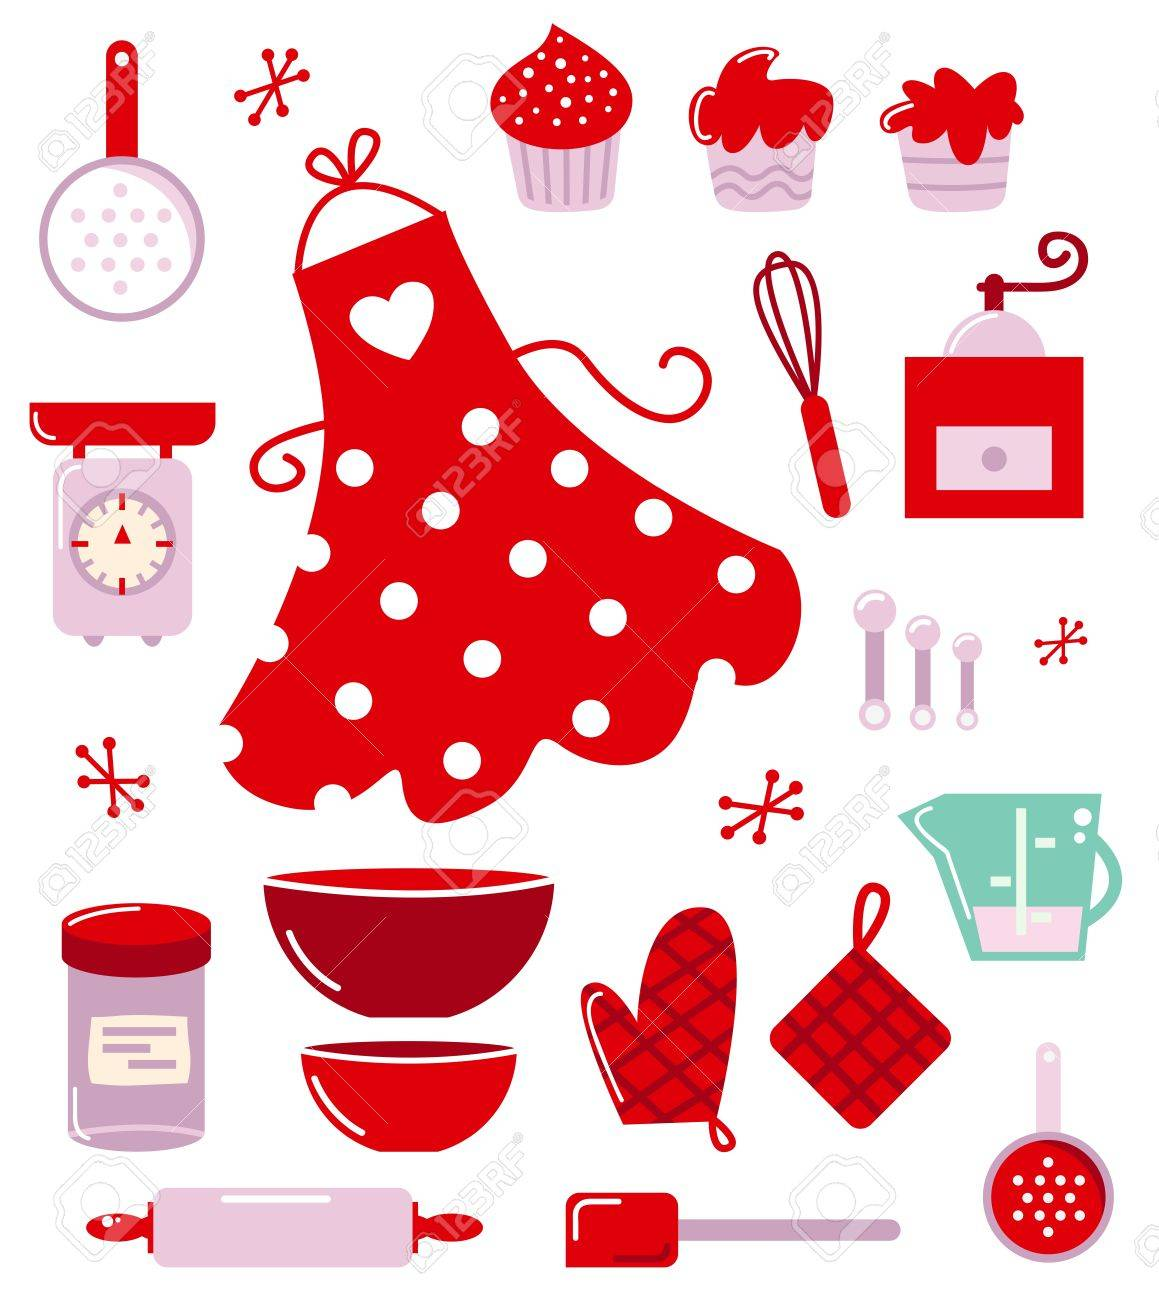 Red vintage kitchen accessories - Retro Set For Baking Or Cooking Royalty Free Cliparts Vectors Red Retro Kitchen Accessories Kitchen Accessories Bradfordkitchenscom